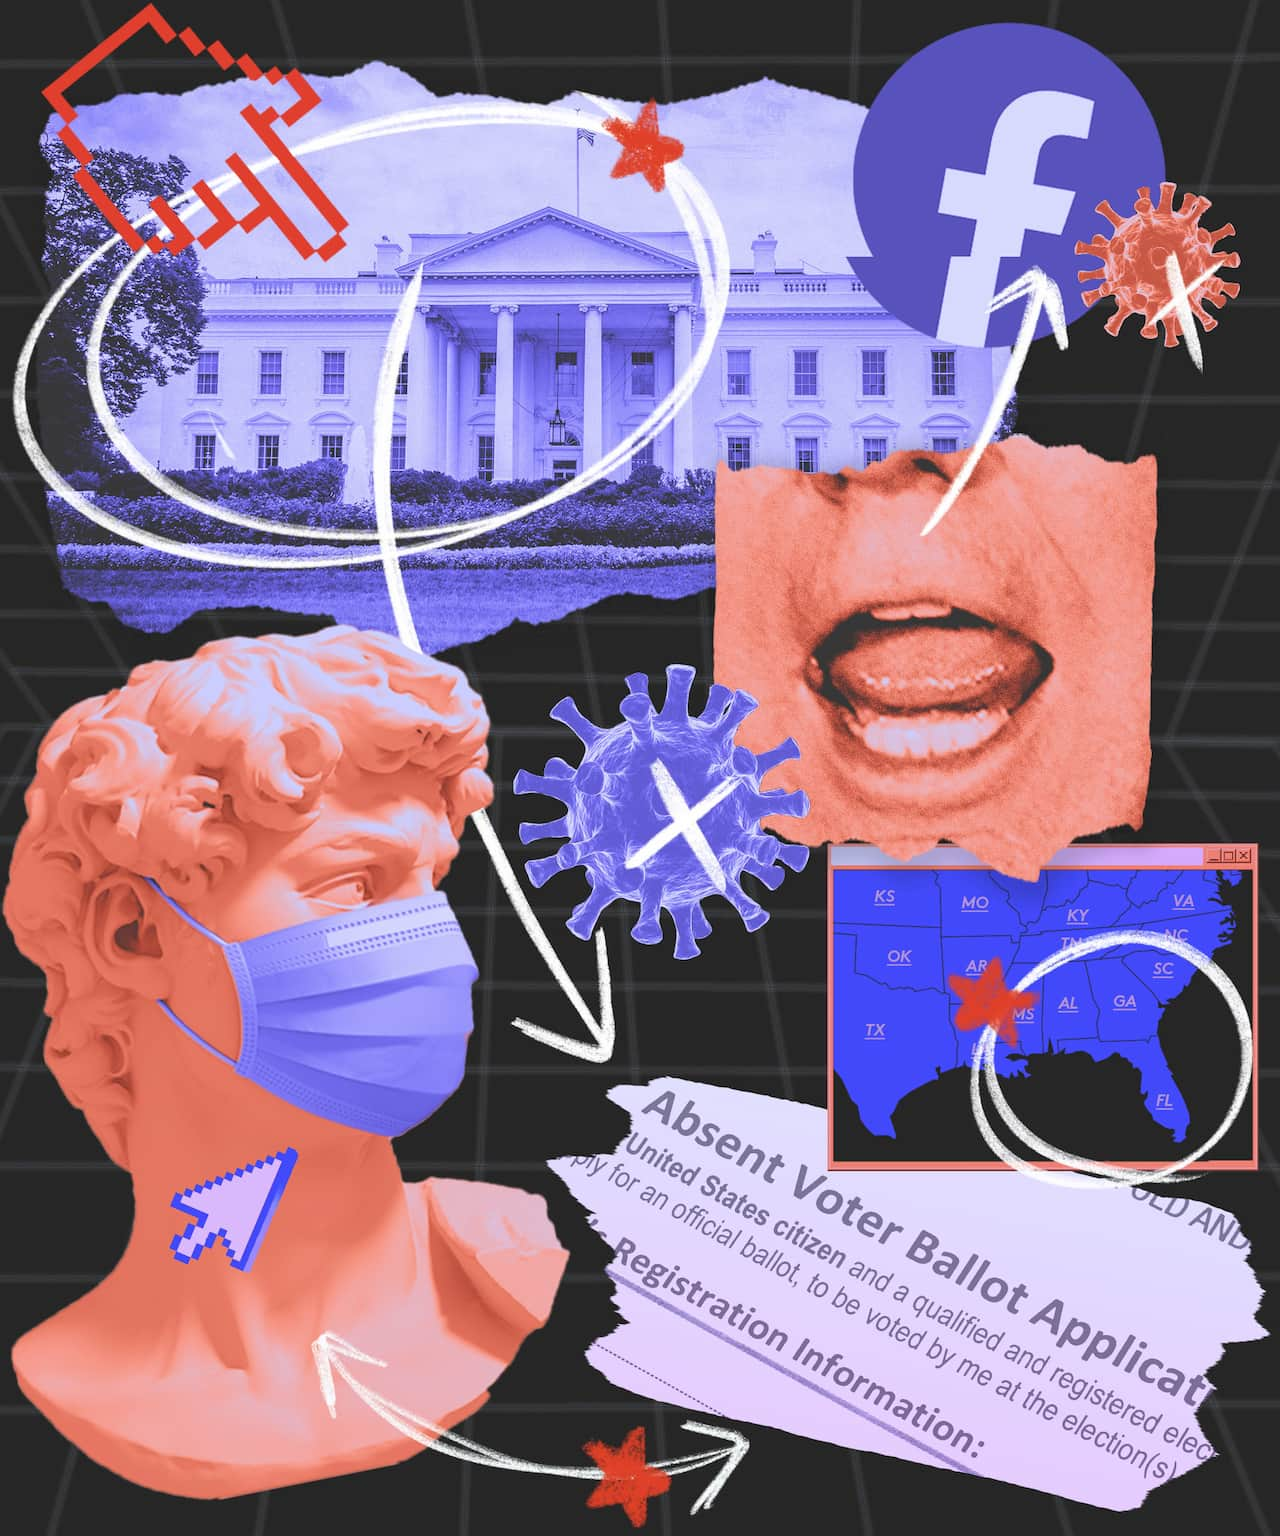 A collage of The White House, Trump's mouth, Facebook Logo, the Covid-19 virus, a map of the southern United States and part of an absentee ballot.